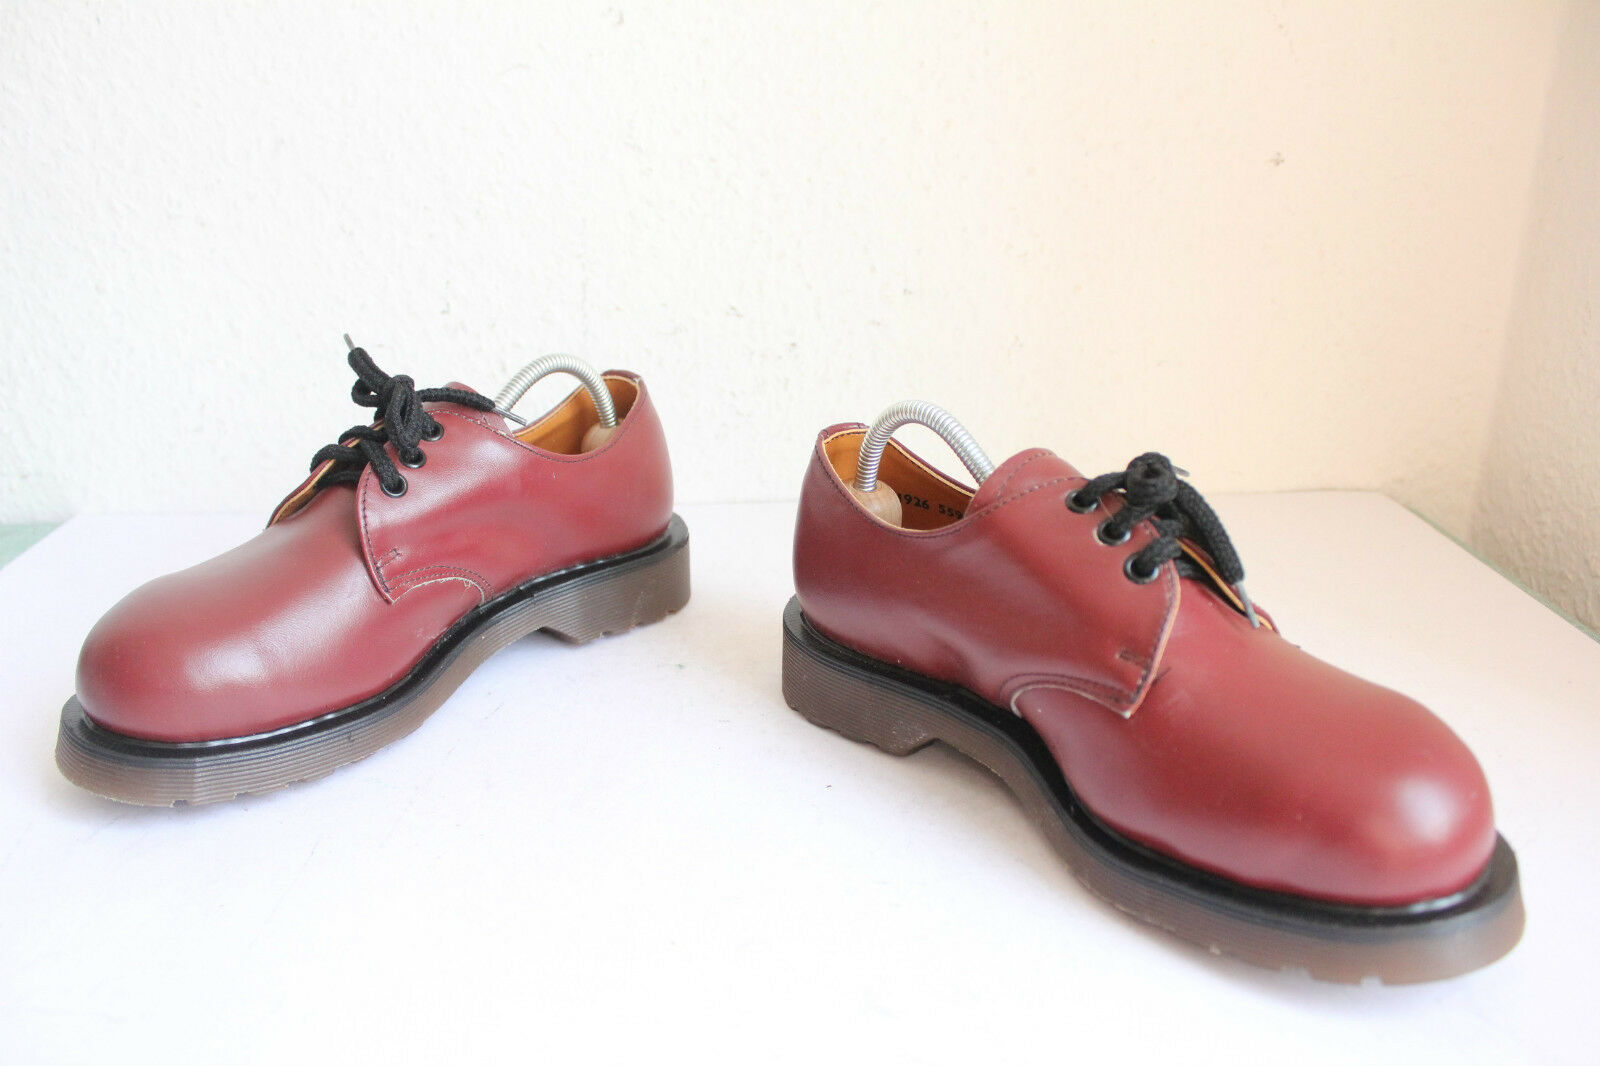 Vintage Dr.Martens Safety Schuhe Weinrot Eu 37-Uk 4 4 4 Made in England--Wie Neu- 031d74